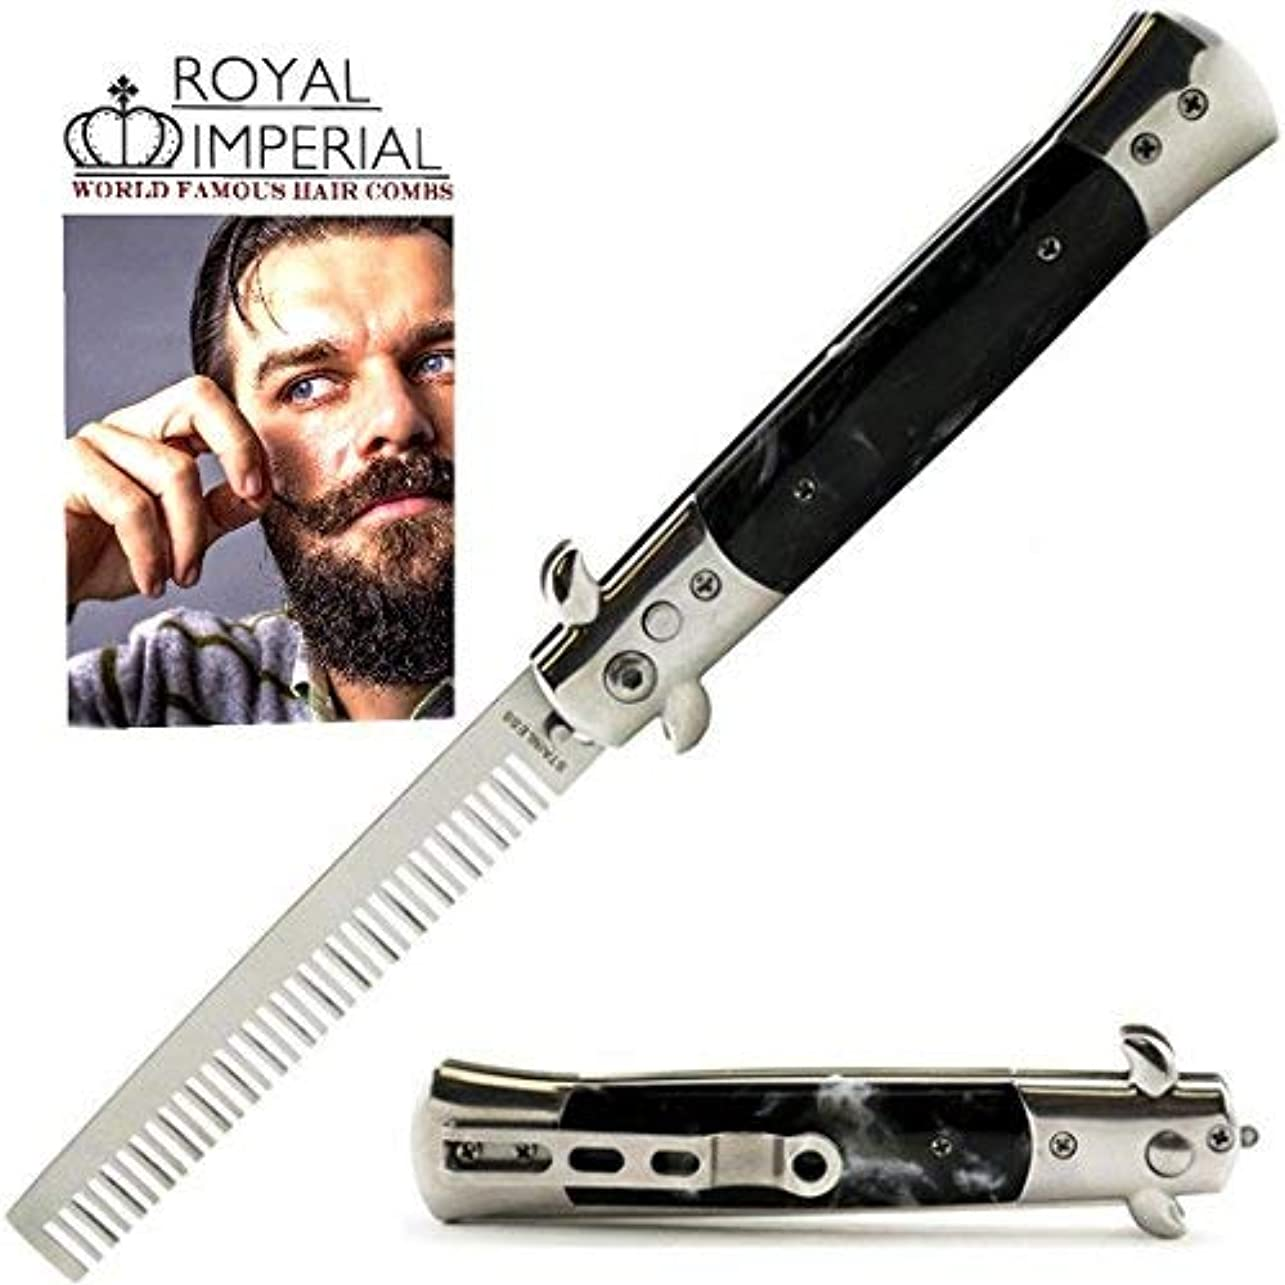 Royal Imperial Metal Switchblade Pocket Folding Flick Hair Comb For Beard, Mustache, Head Black Pearl Handle ~...